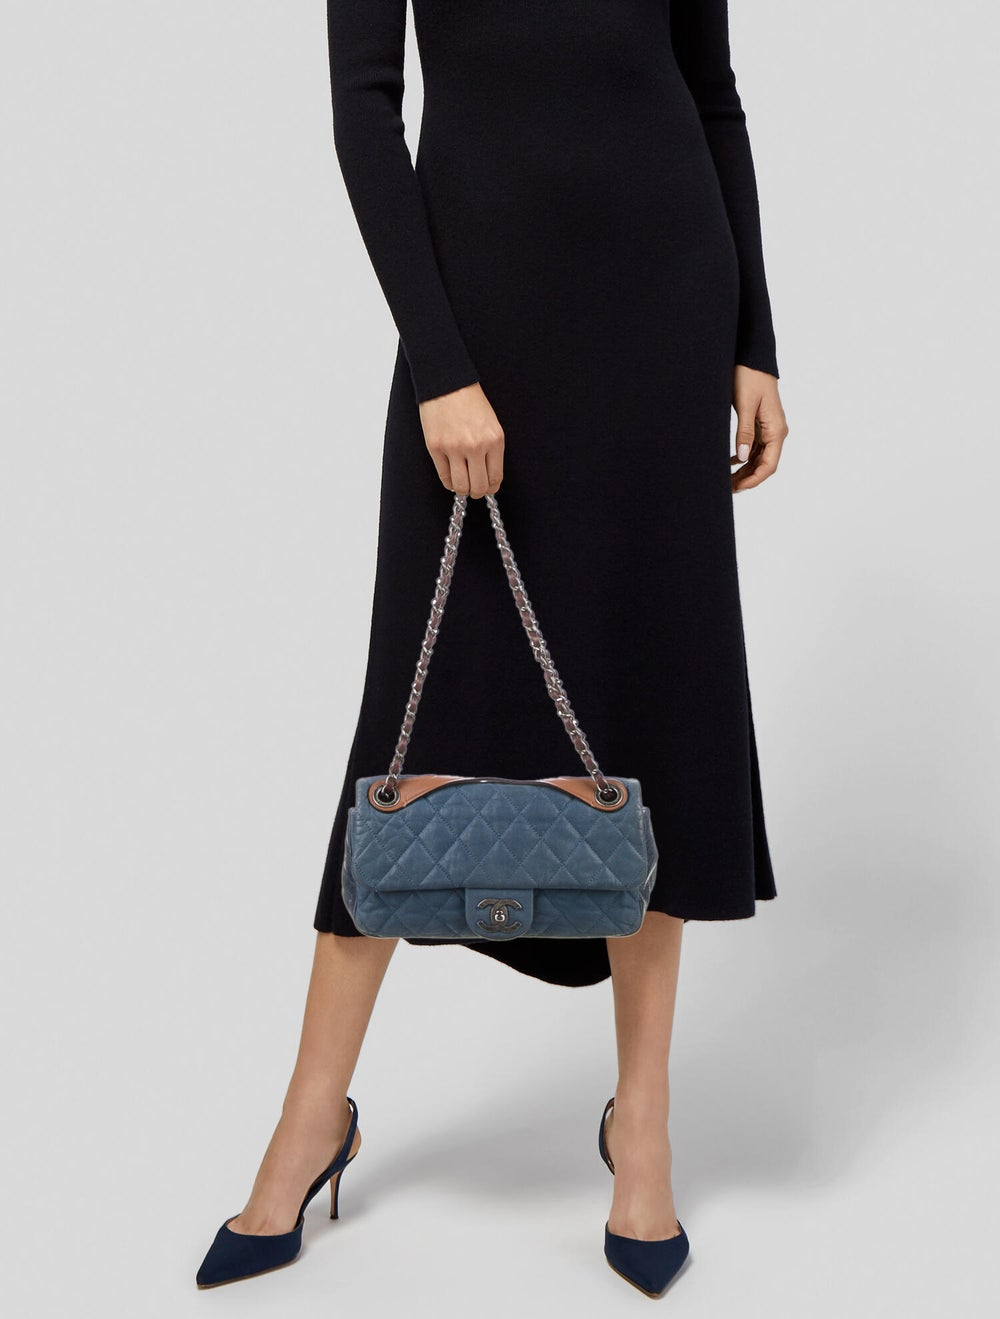 Chanel In the Mix Flap Bag Blue - image 2